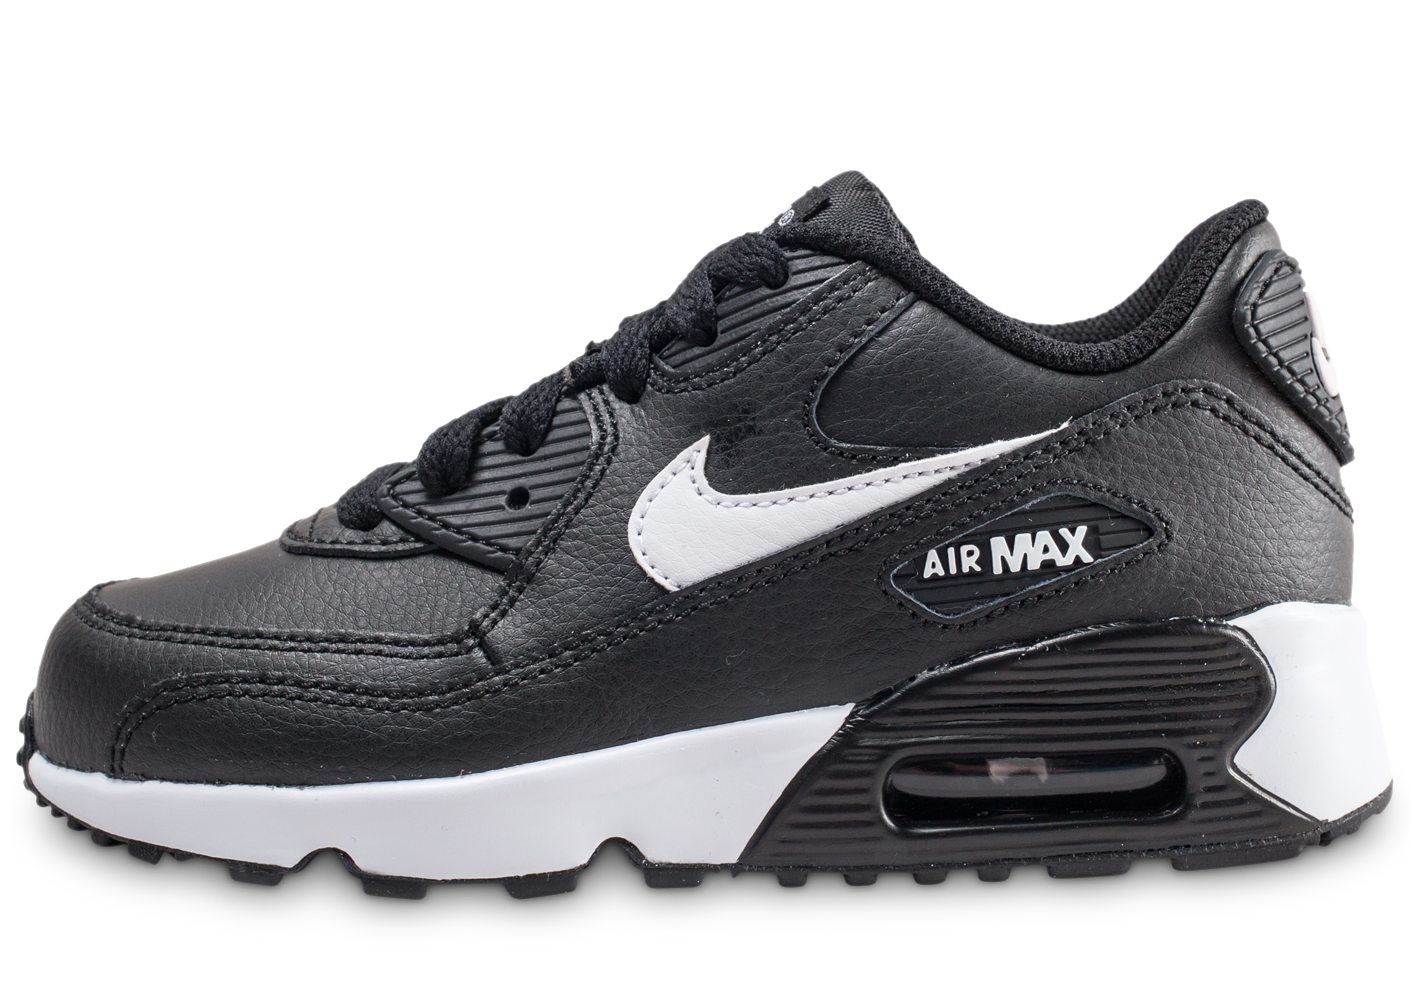 super popular c7366 9c760 Nike air max 90 leather noire et blanche enfant.